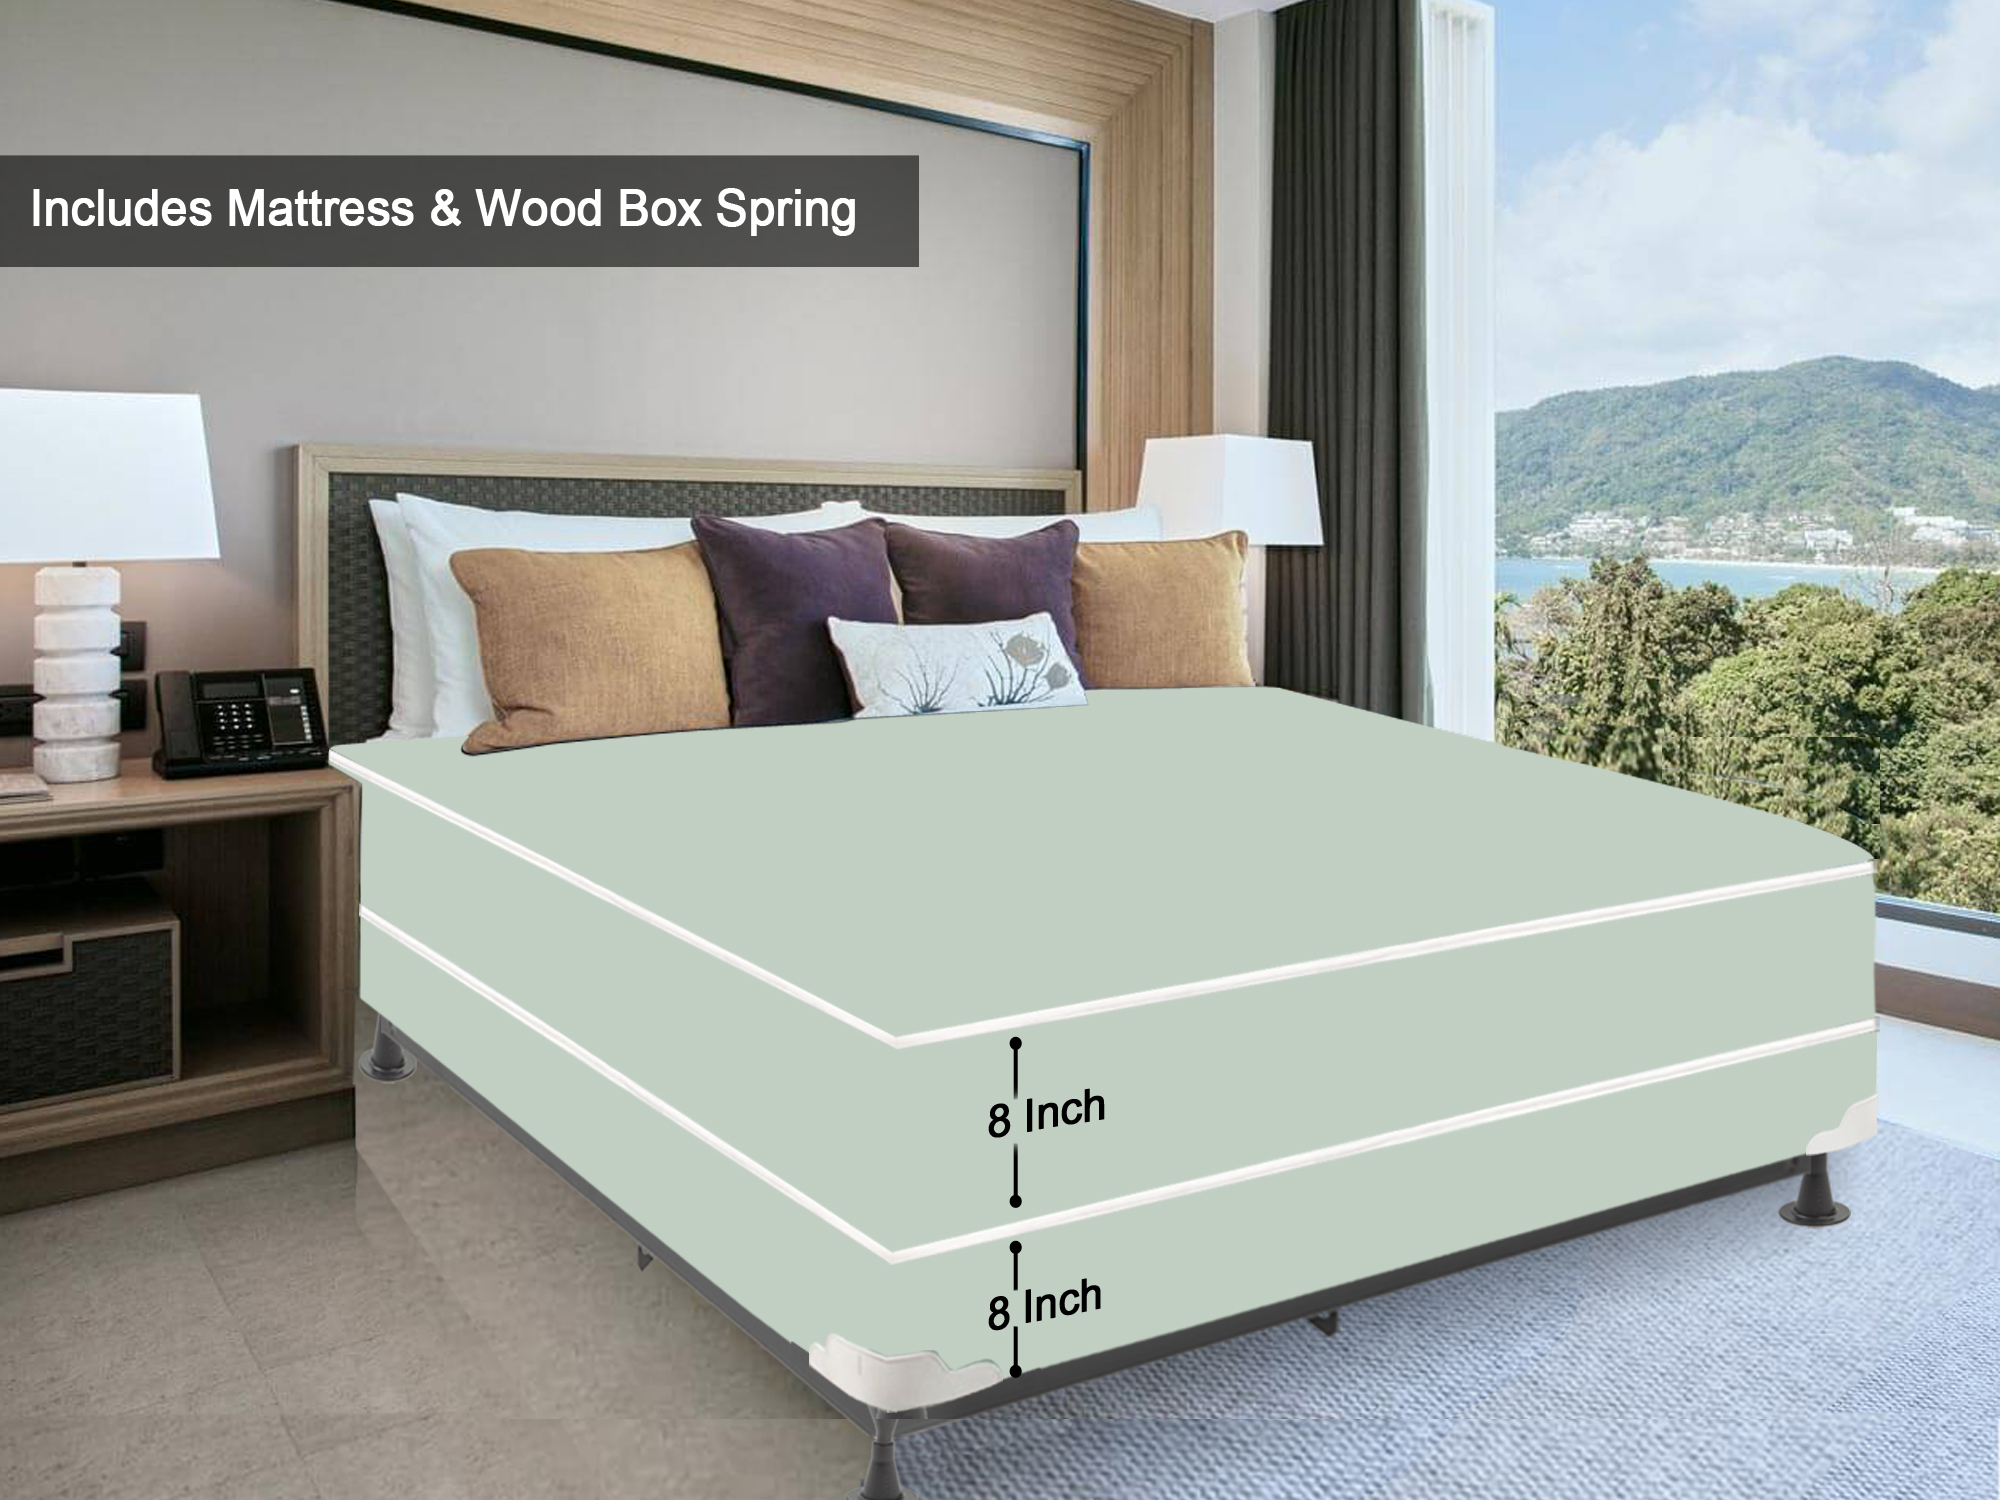 Wayton 8 Inch Tight Top Innerspring Firm Vinyl Waterproof Doublesided Mattress And Wood Box